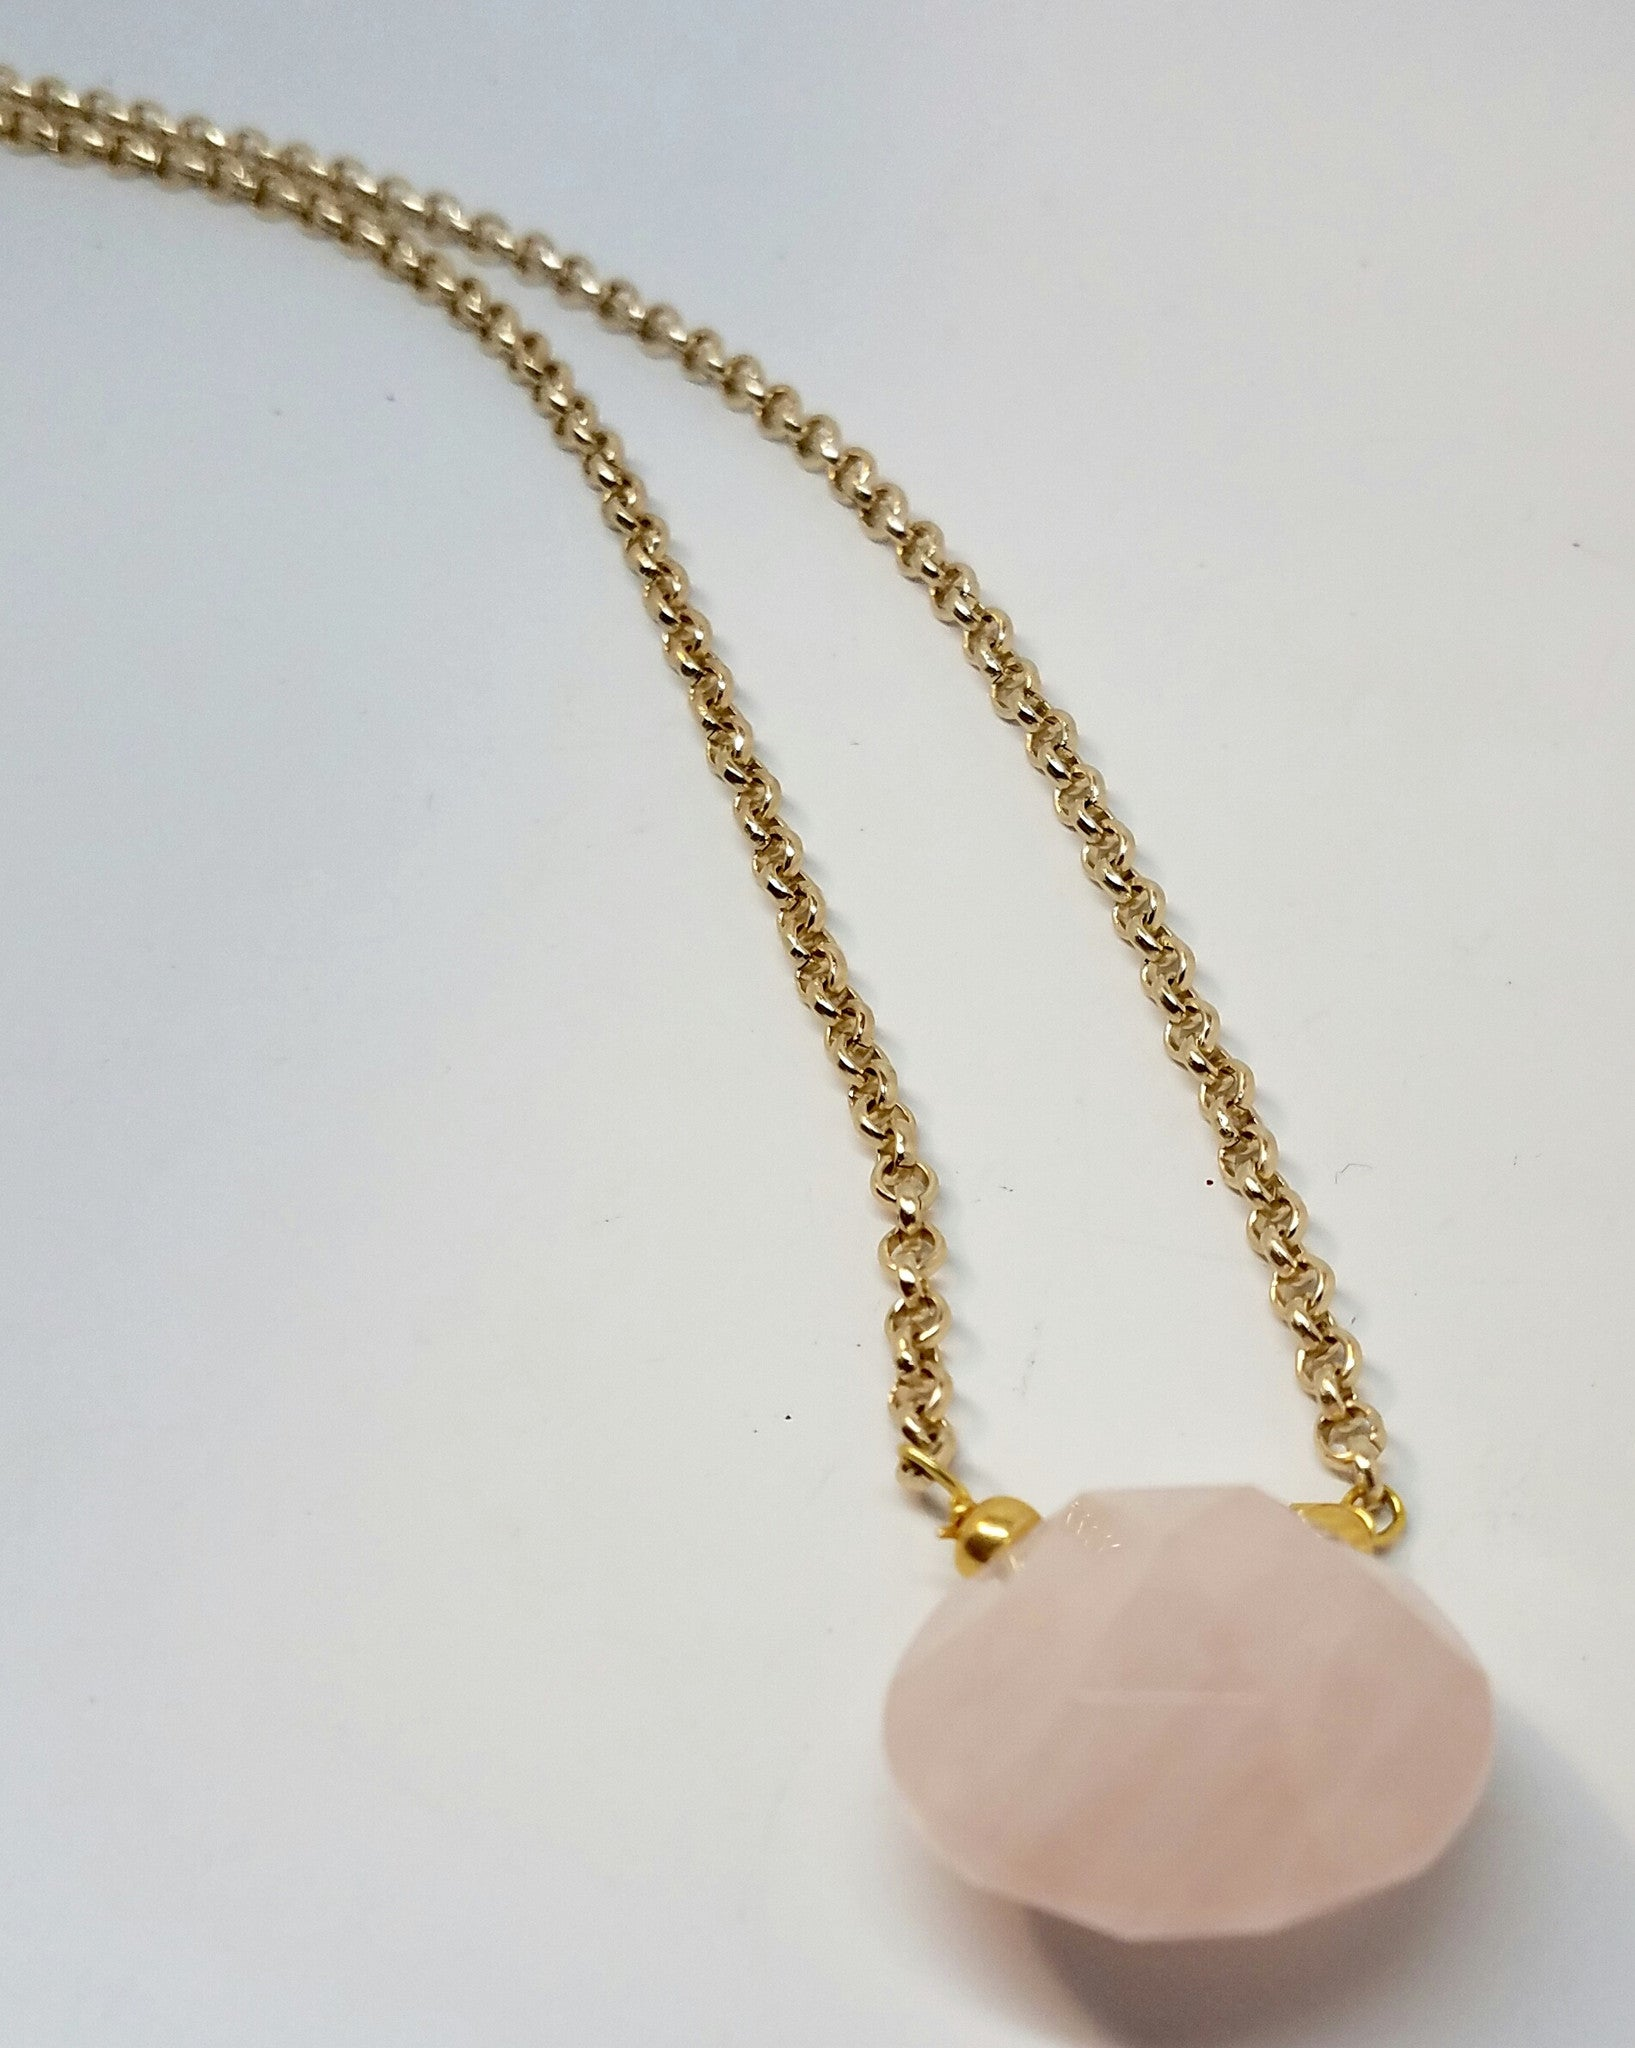 Rose Quartz Briolette Necklace - Pretty Princess Style  - 1